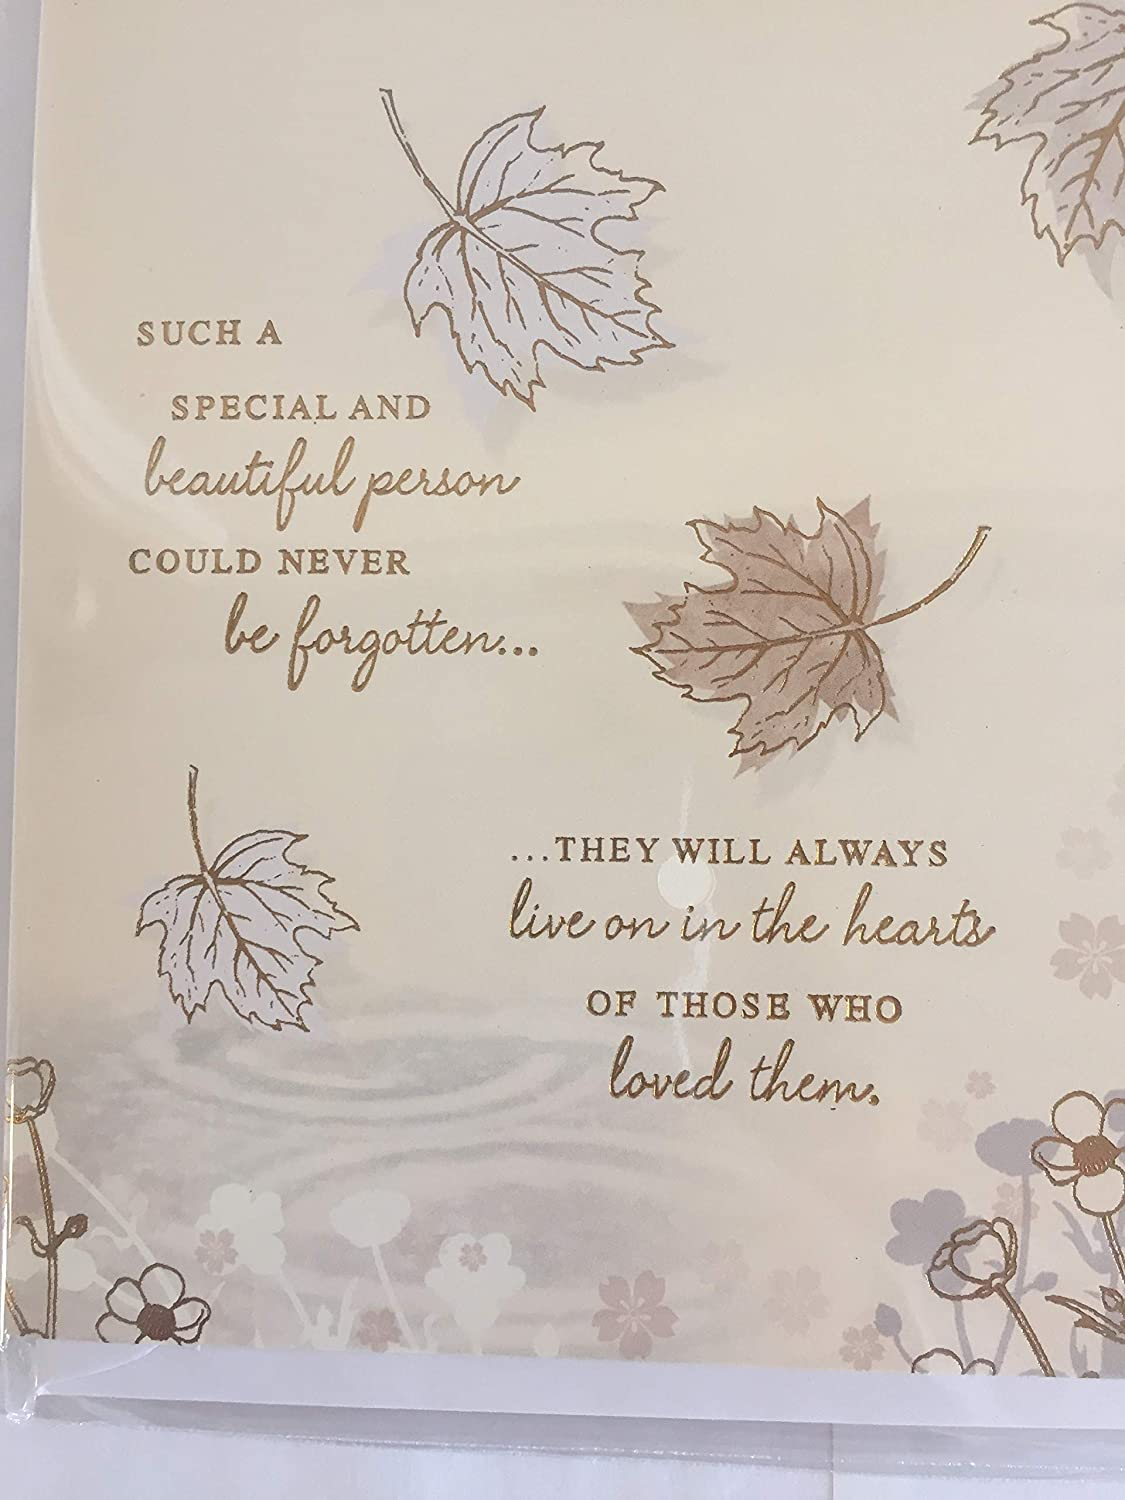 with Sympathy in The Loss of Your Partner Sympathy Card Condolence Cream//Brown//Gold Leaves//Words Foil Detail